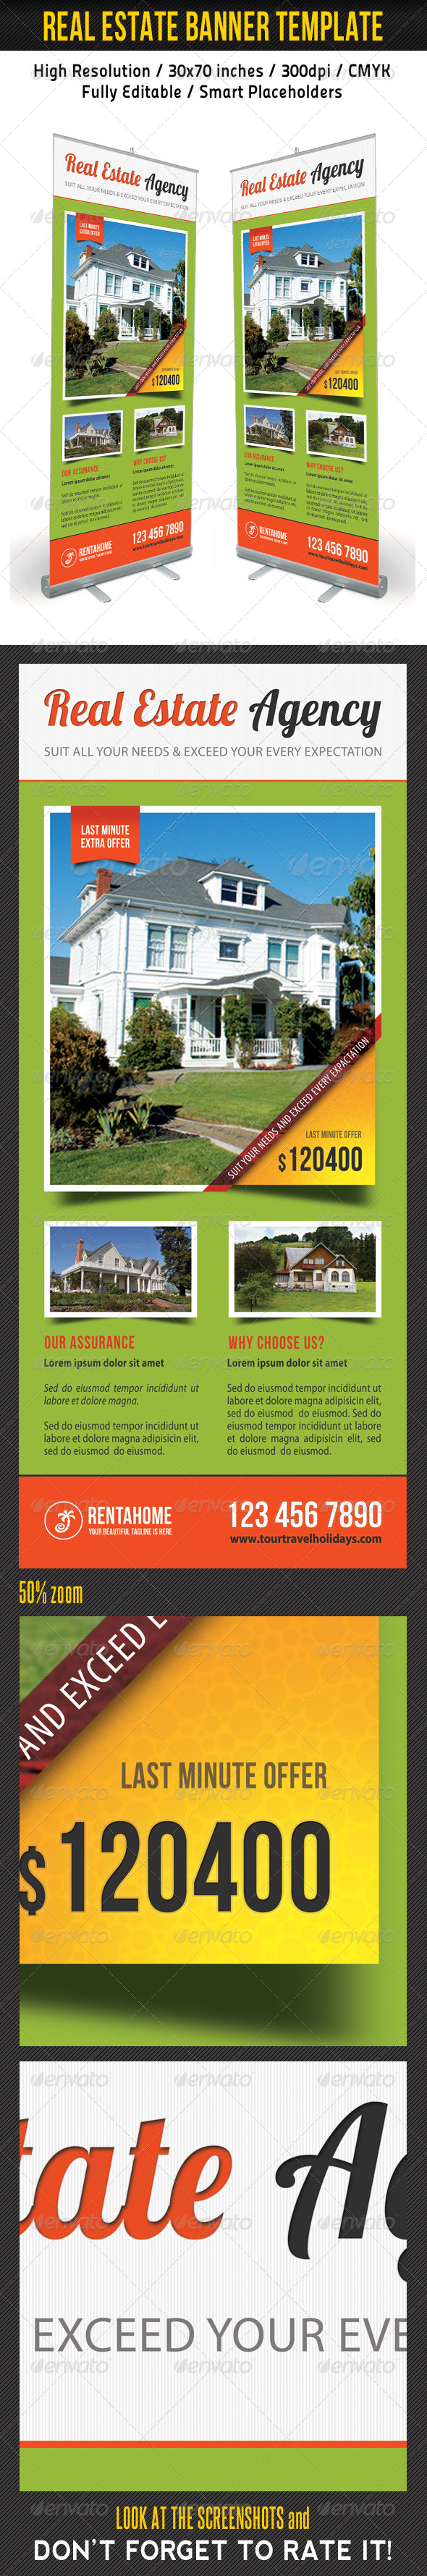 Real Estate Banner Template 04 - Signage Print Templates